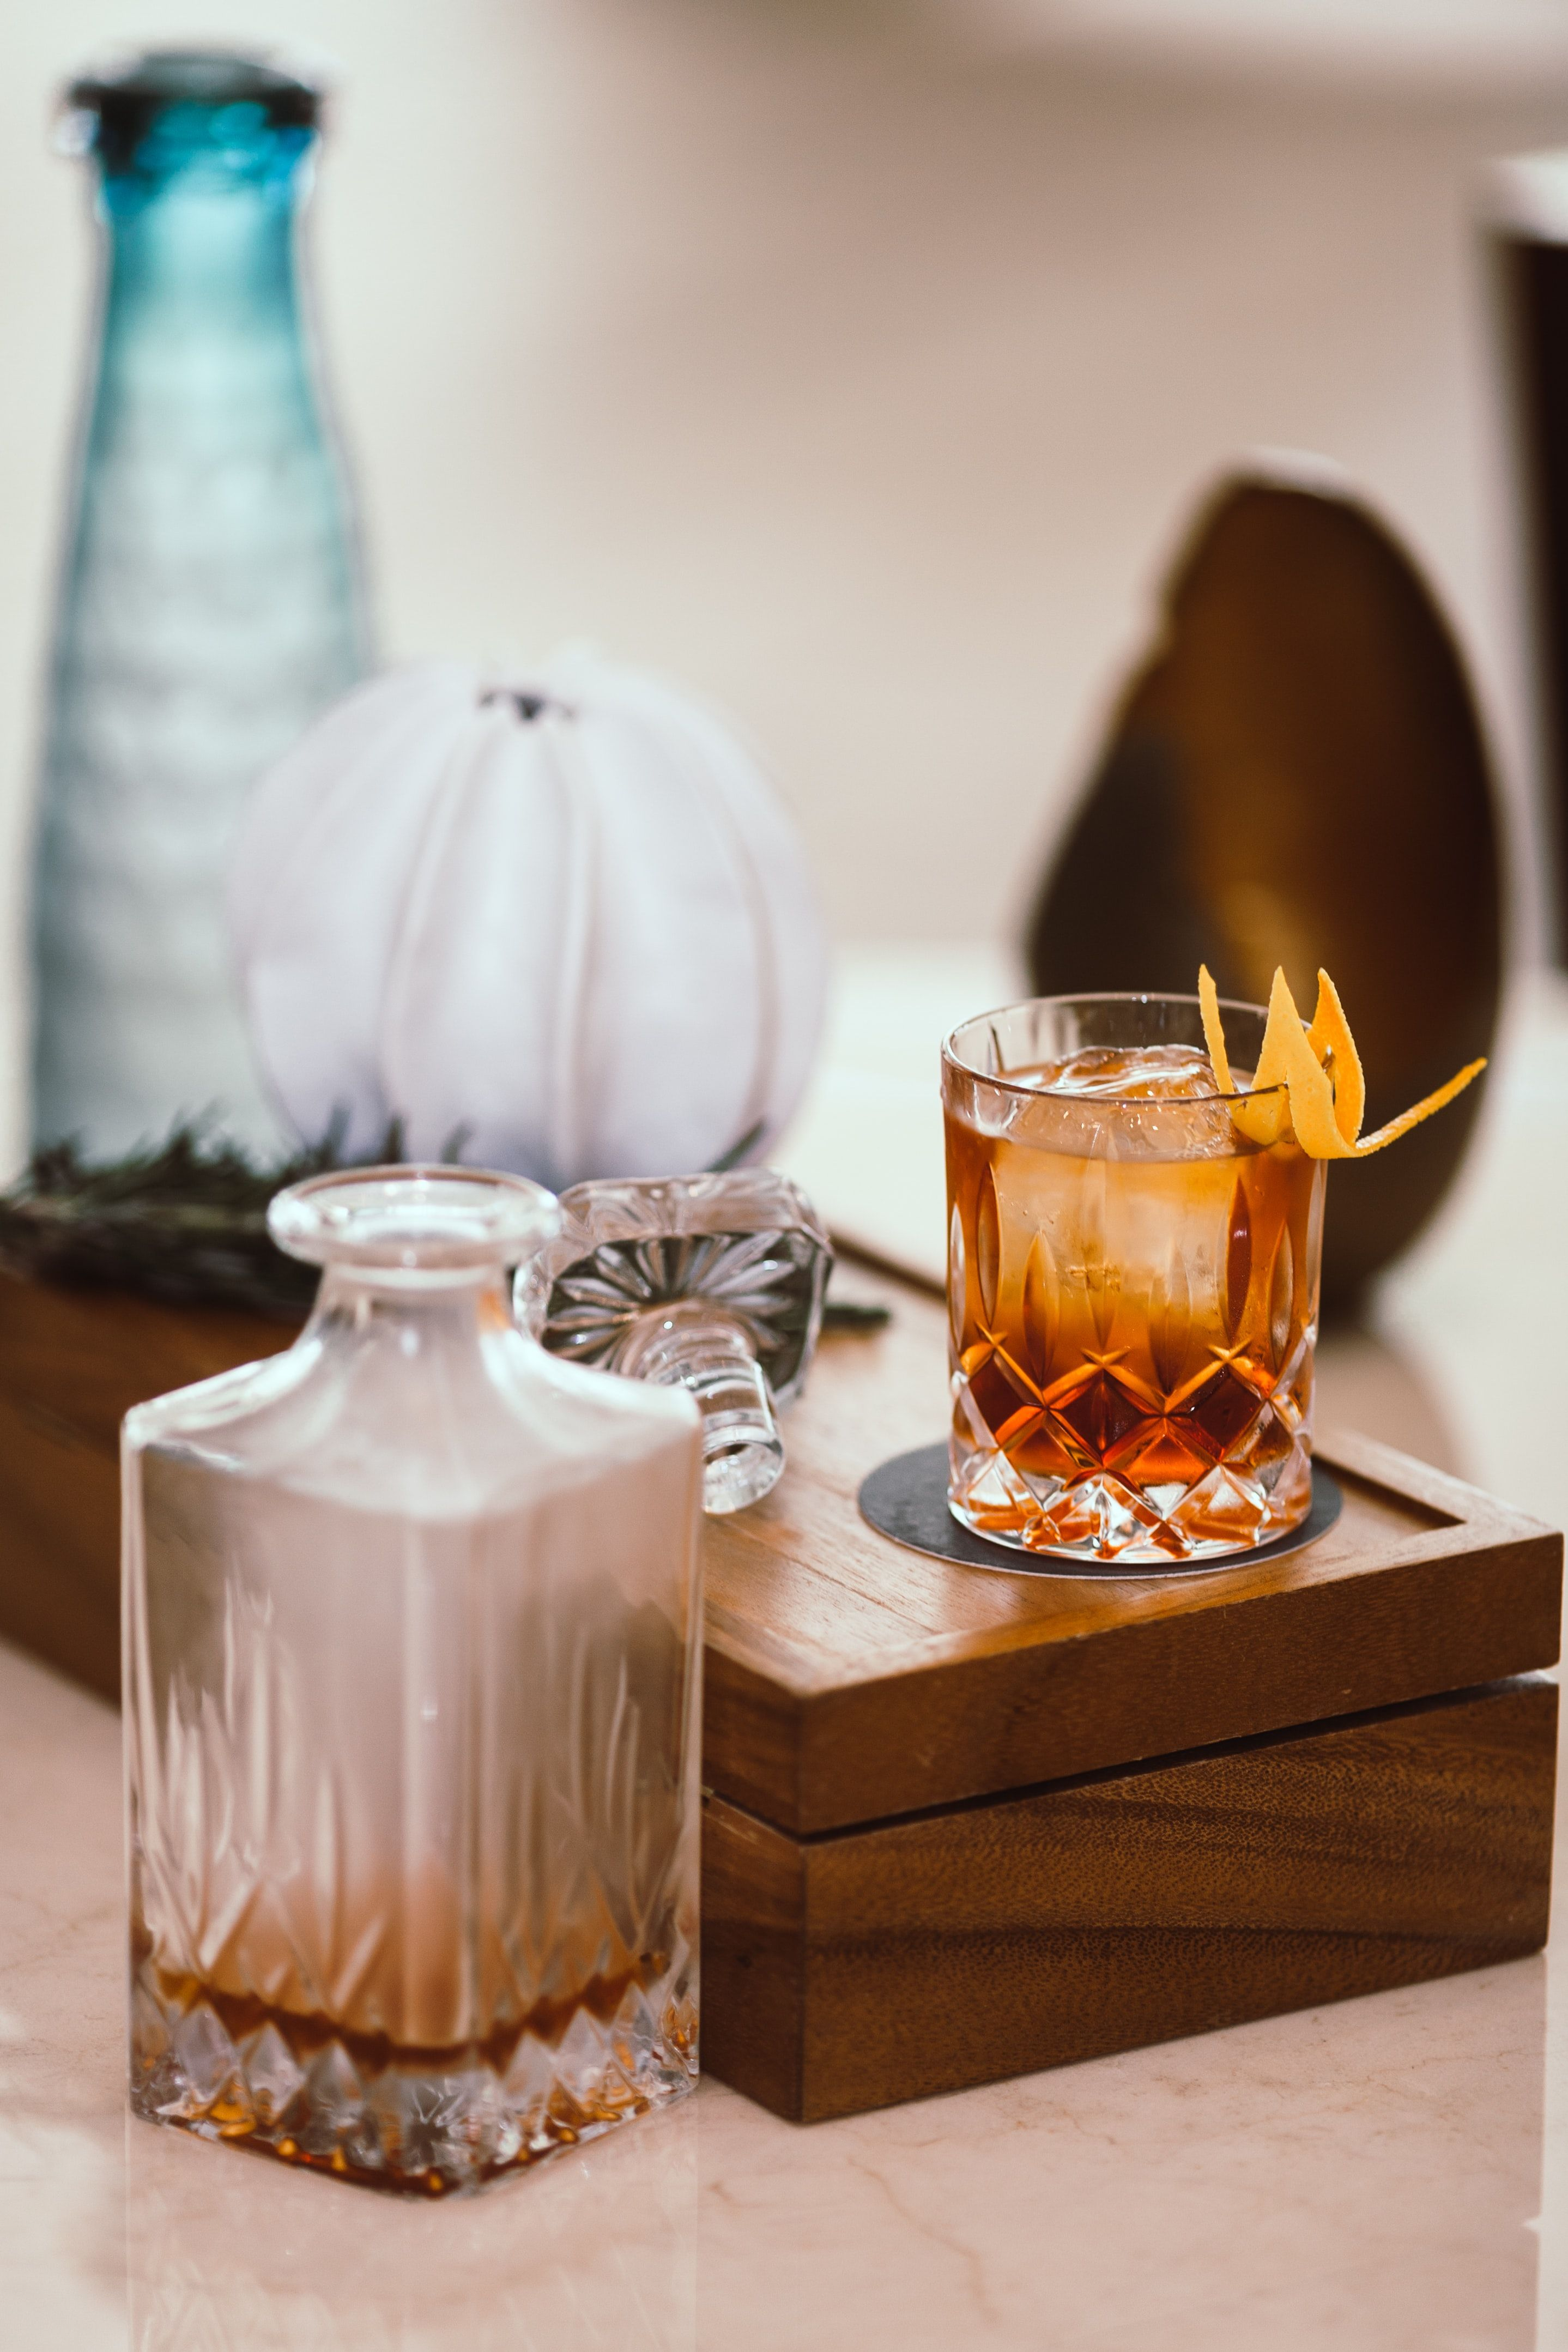 A Simple Old Fashioned Cocktail Recipe You Can Master At Home